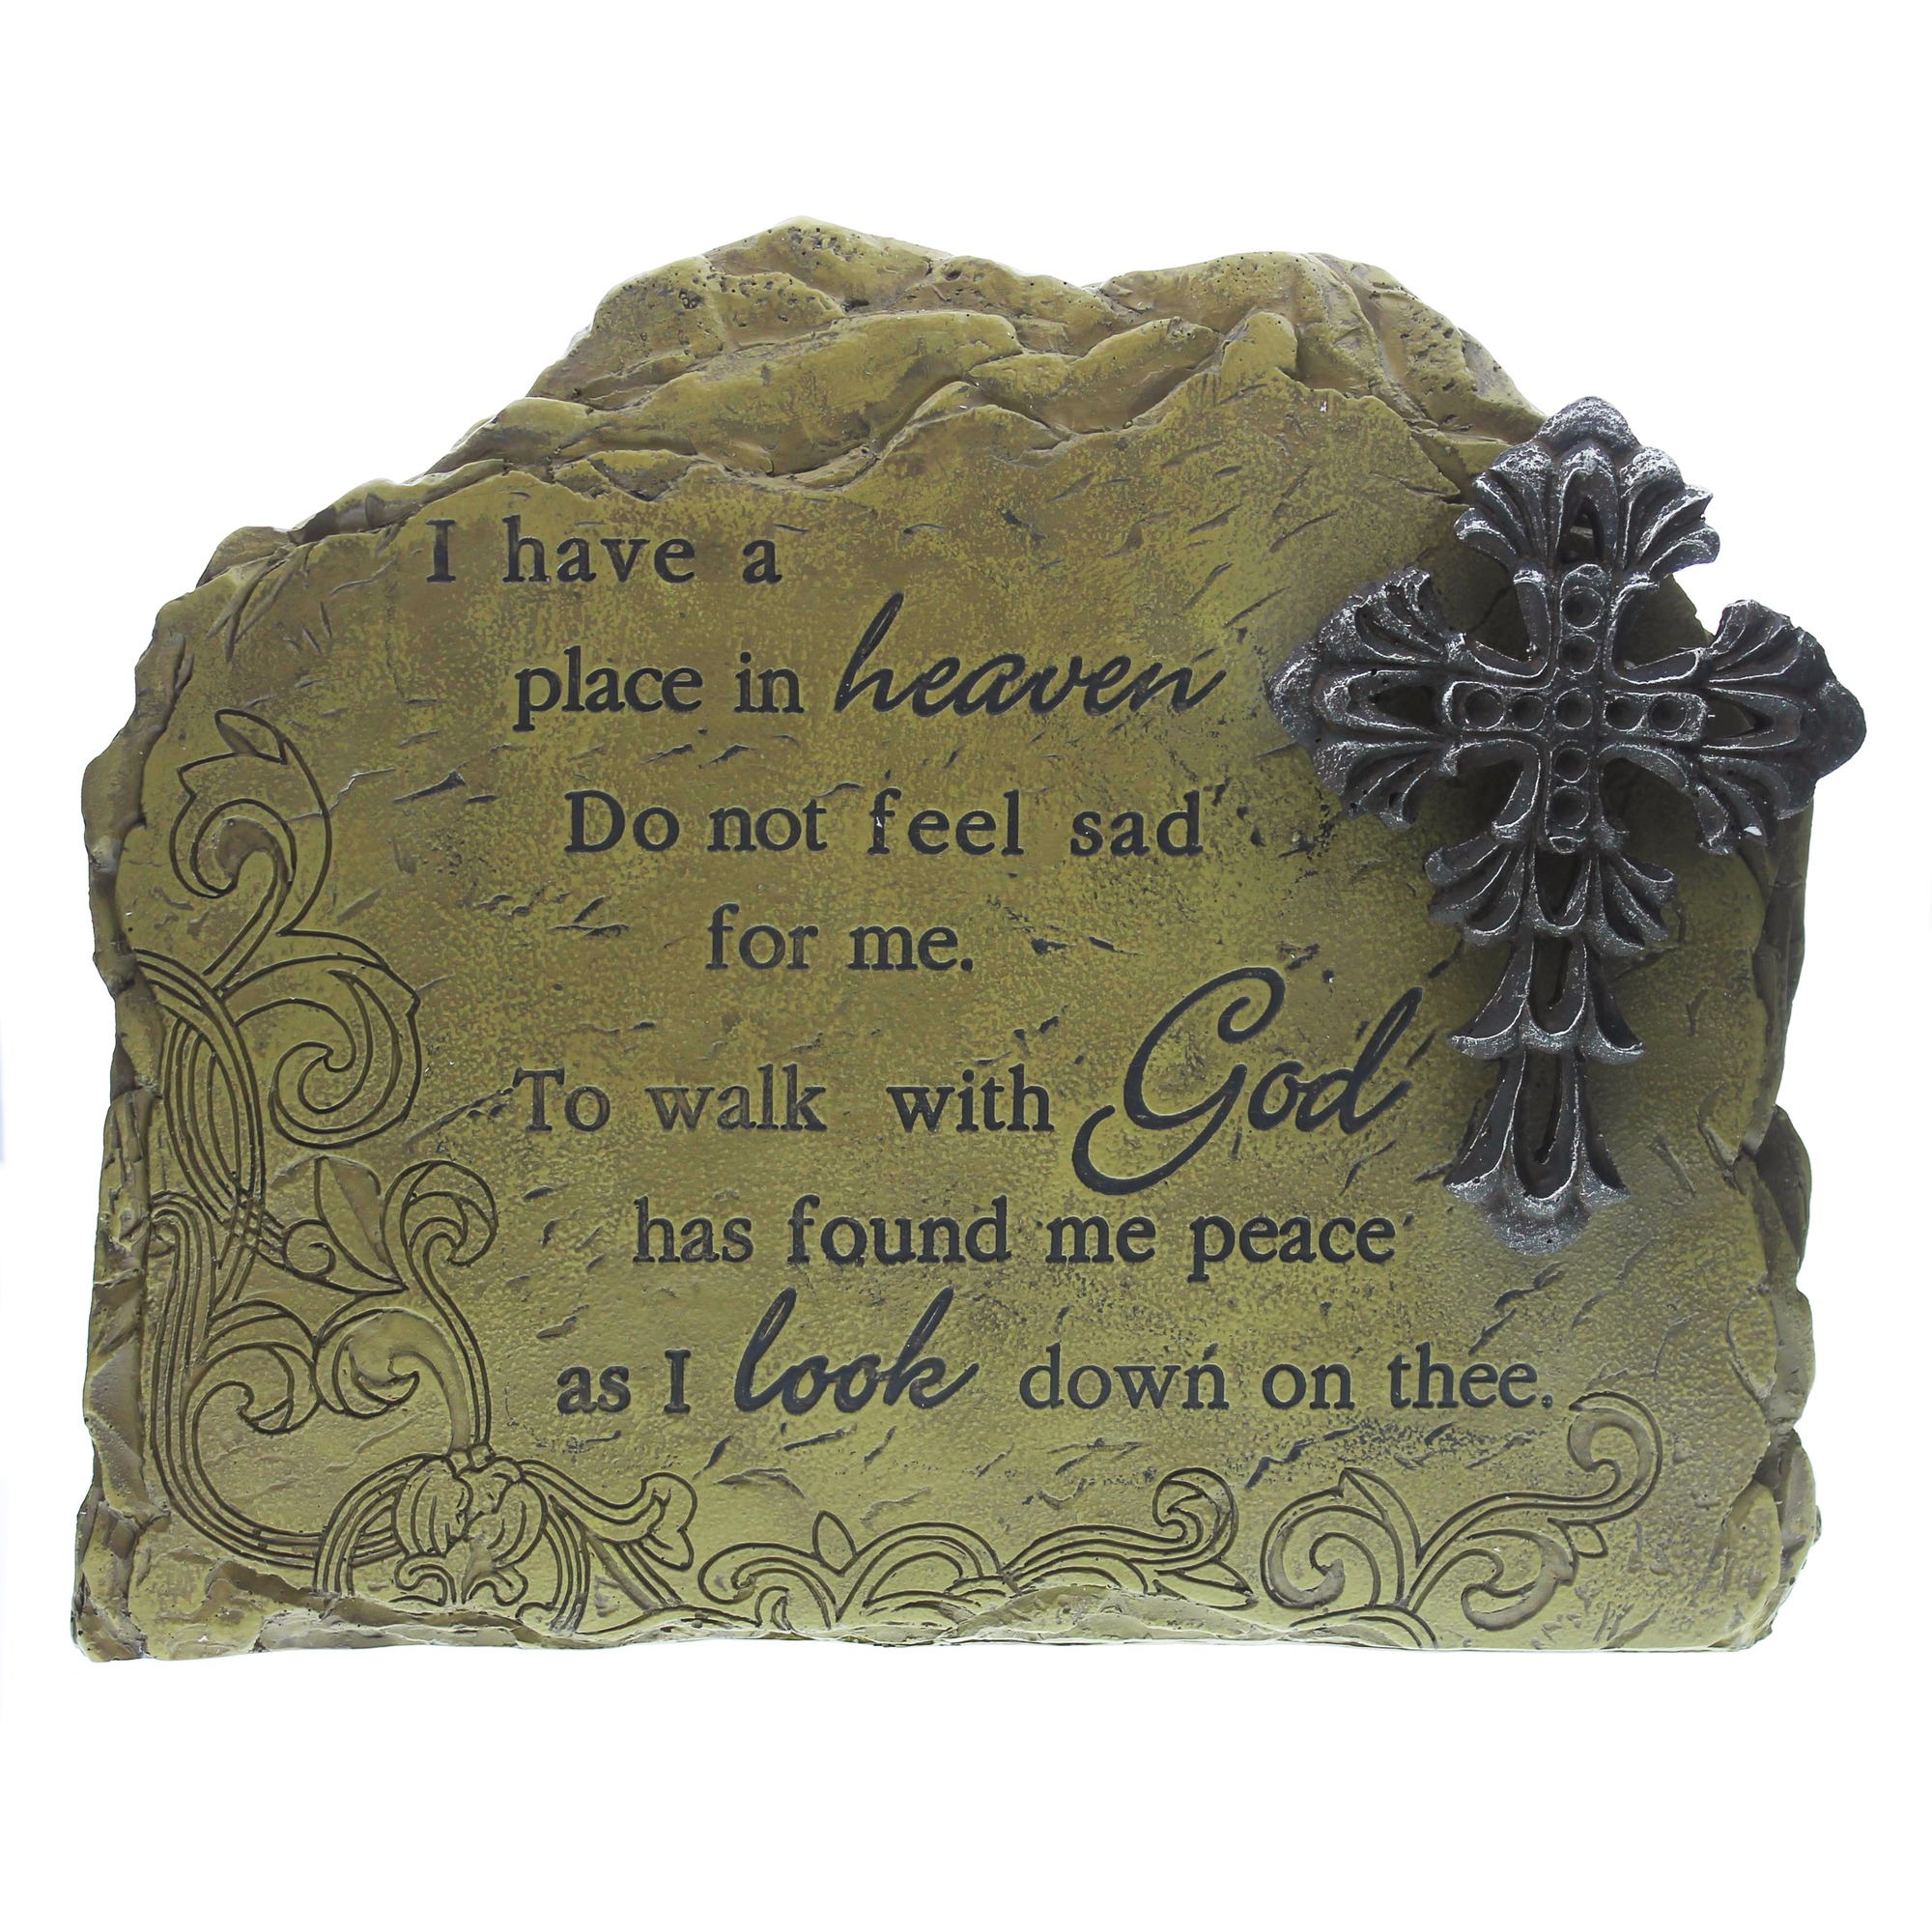 inches products burial memorial grave wide marker stones fullxfull stone river il garden personalized natural cat pet